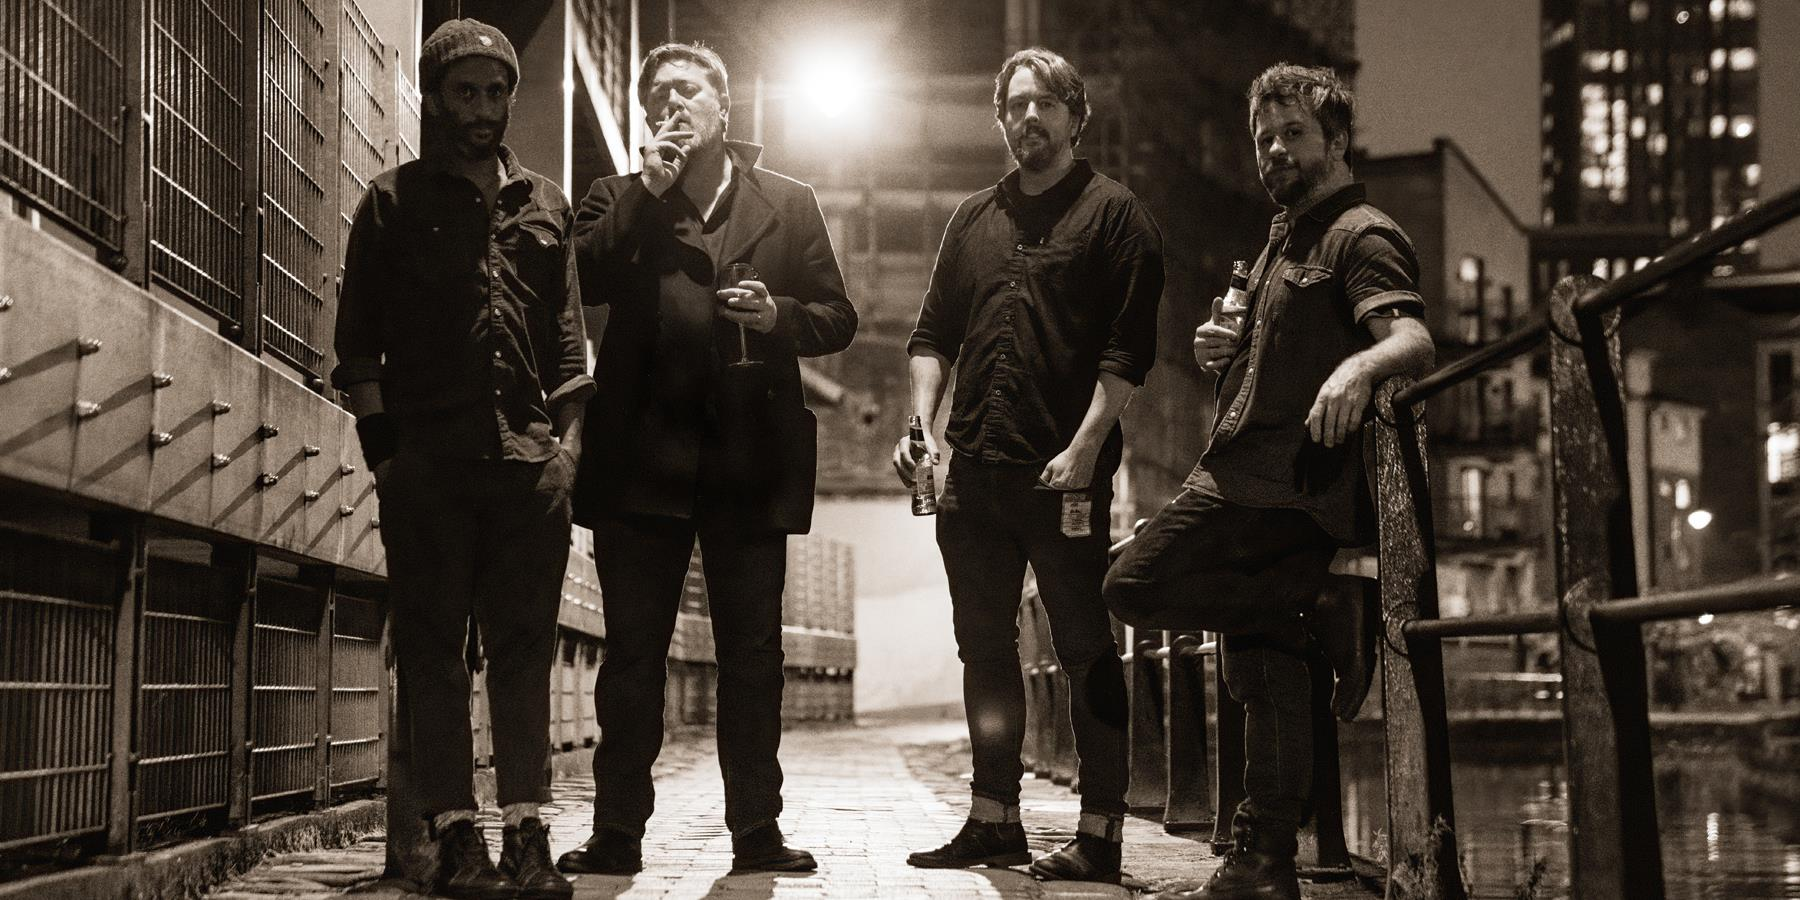 A band standing in an alleyway